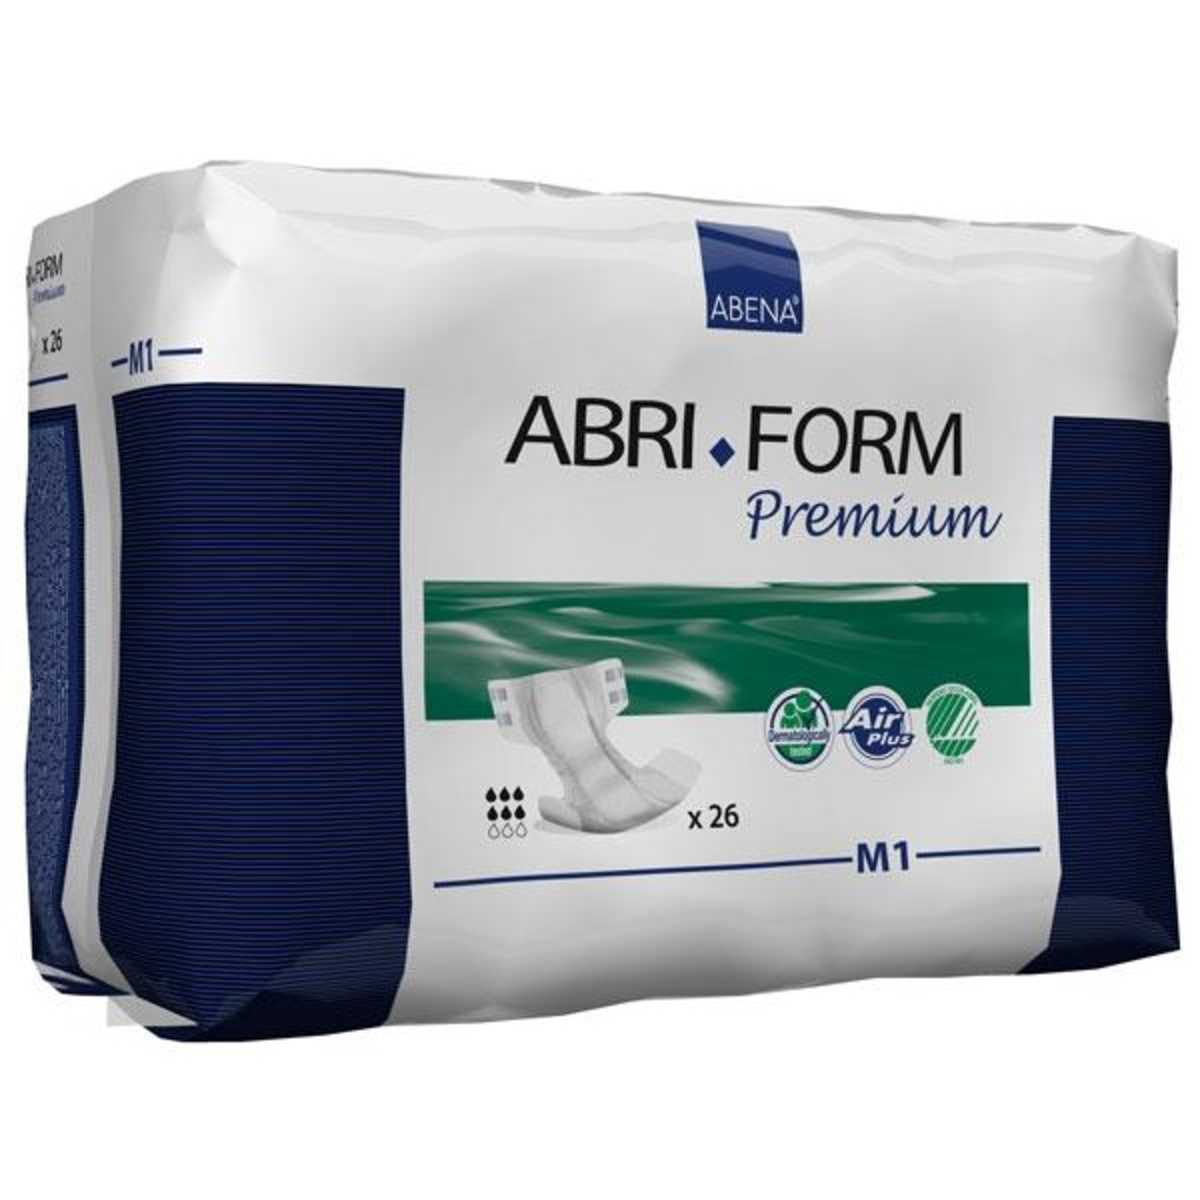 Abri-Form M1 Diapers